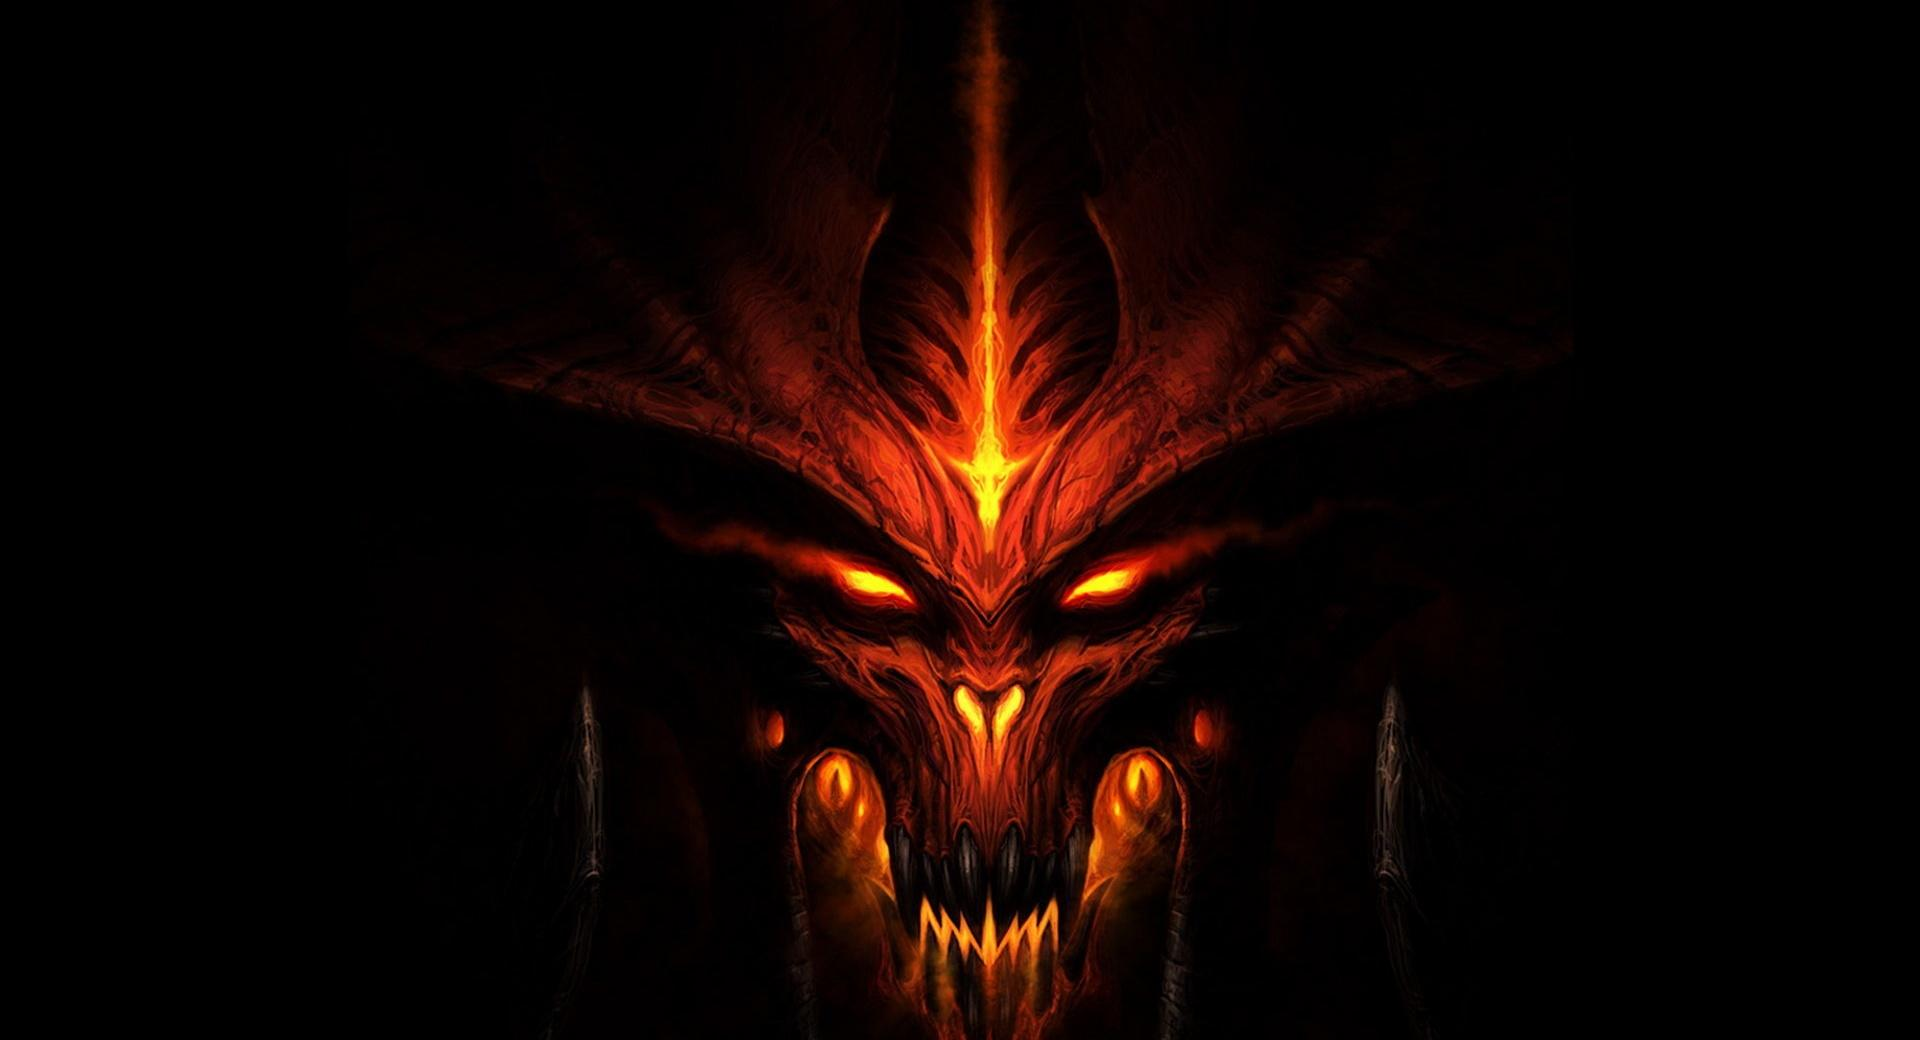 Fire Monster wallpapers HD quality